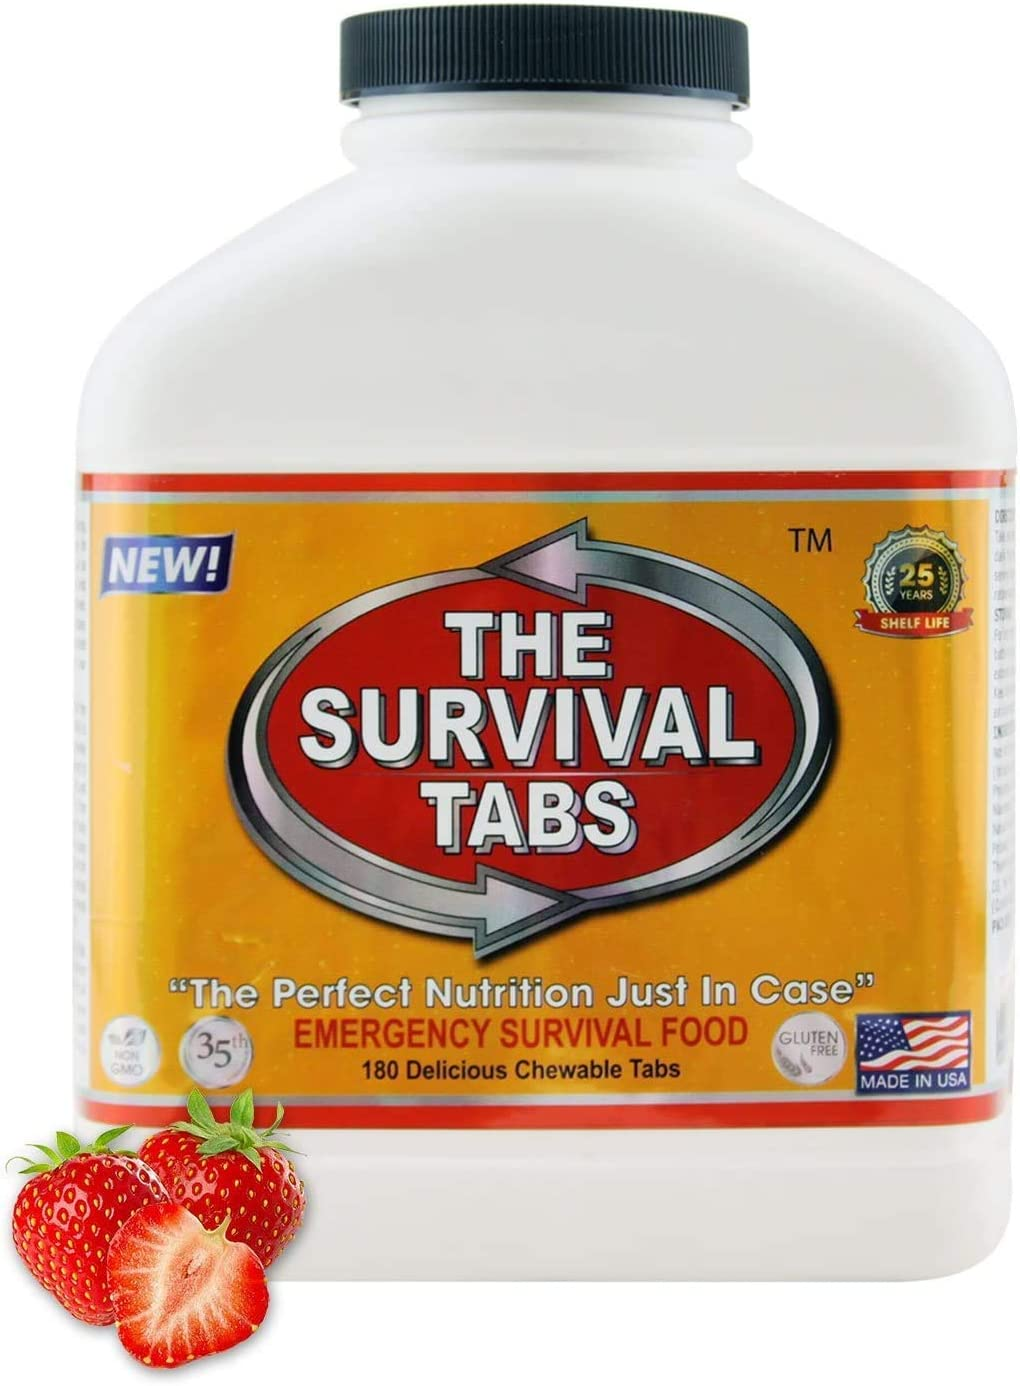 Survival Tabs 15-Day Food Supply Emergency Food Ration 180 tabs Survival MREs for Disaster Preparedness for Earthquake Flood Tsunami Gluten Free and Non-GMO 25 Years Shelf Life - Strawberry Flavor - -